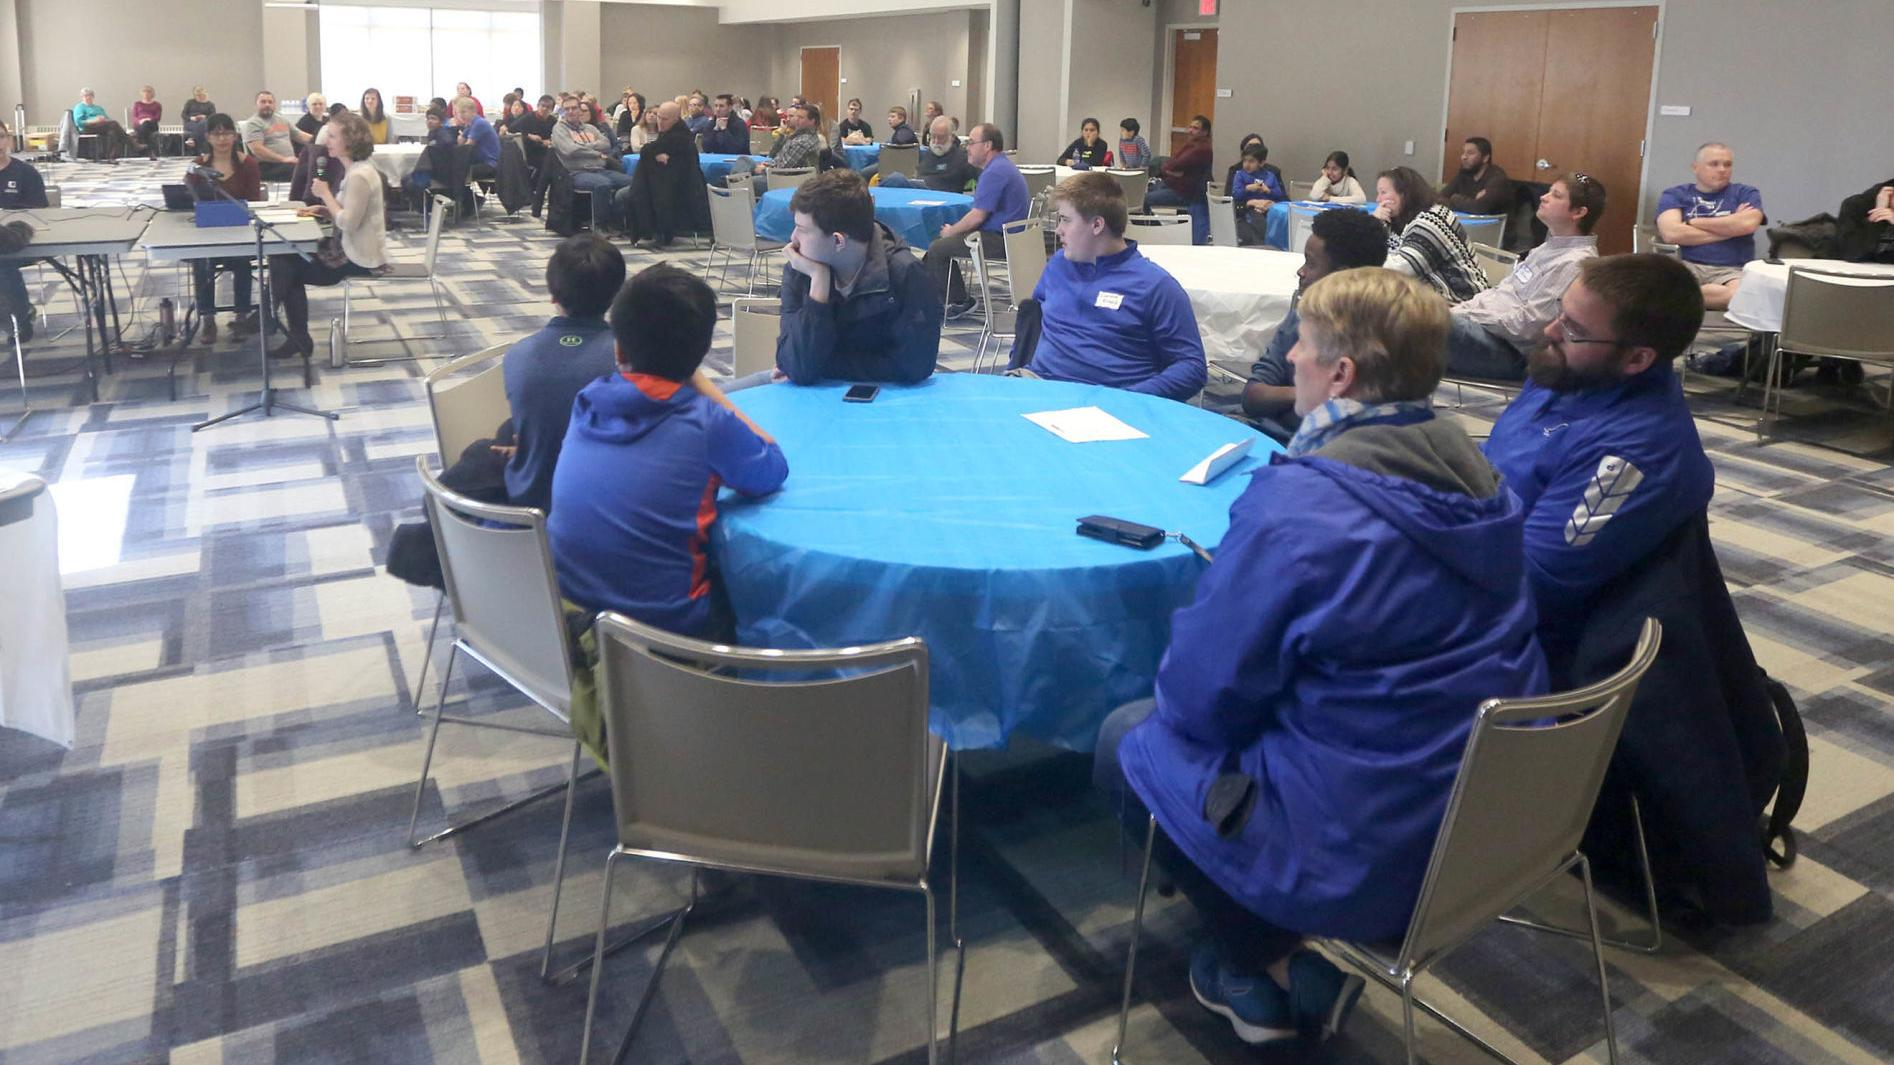 Meet the MATHCOUNTS competitors who battled it out Saturday in Decatur